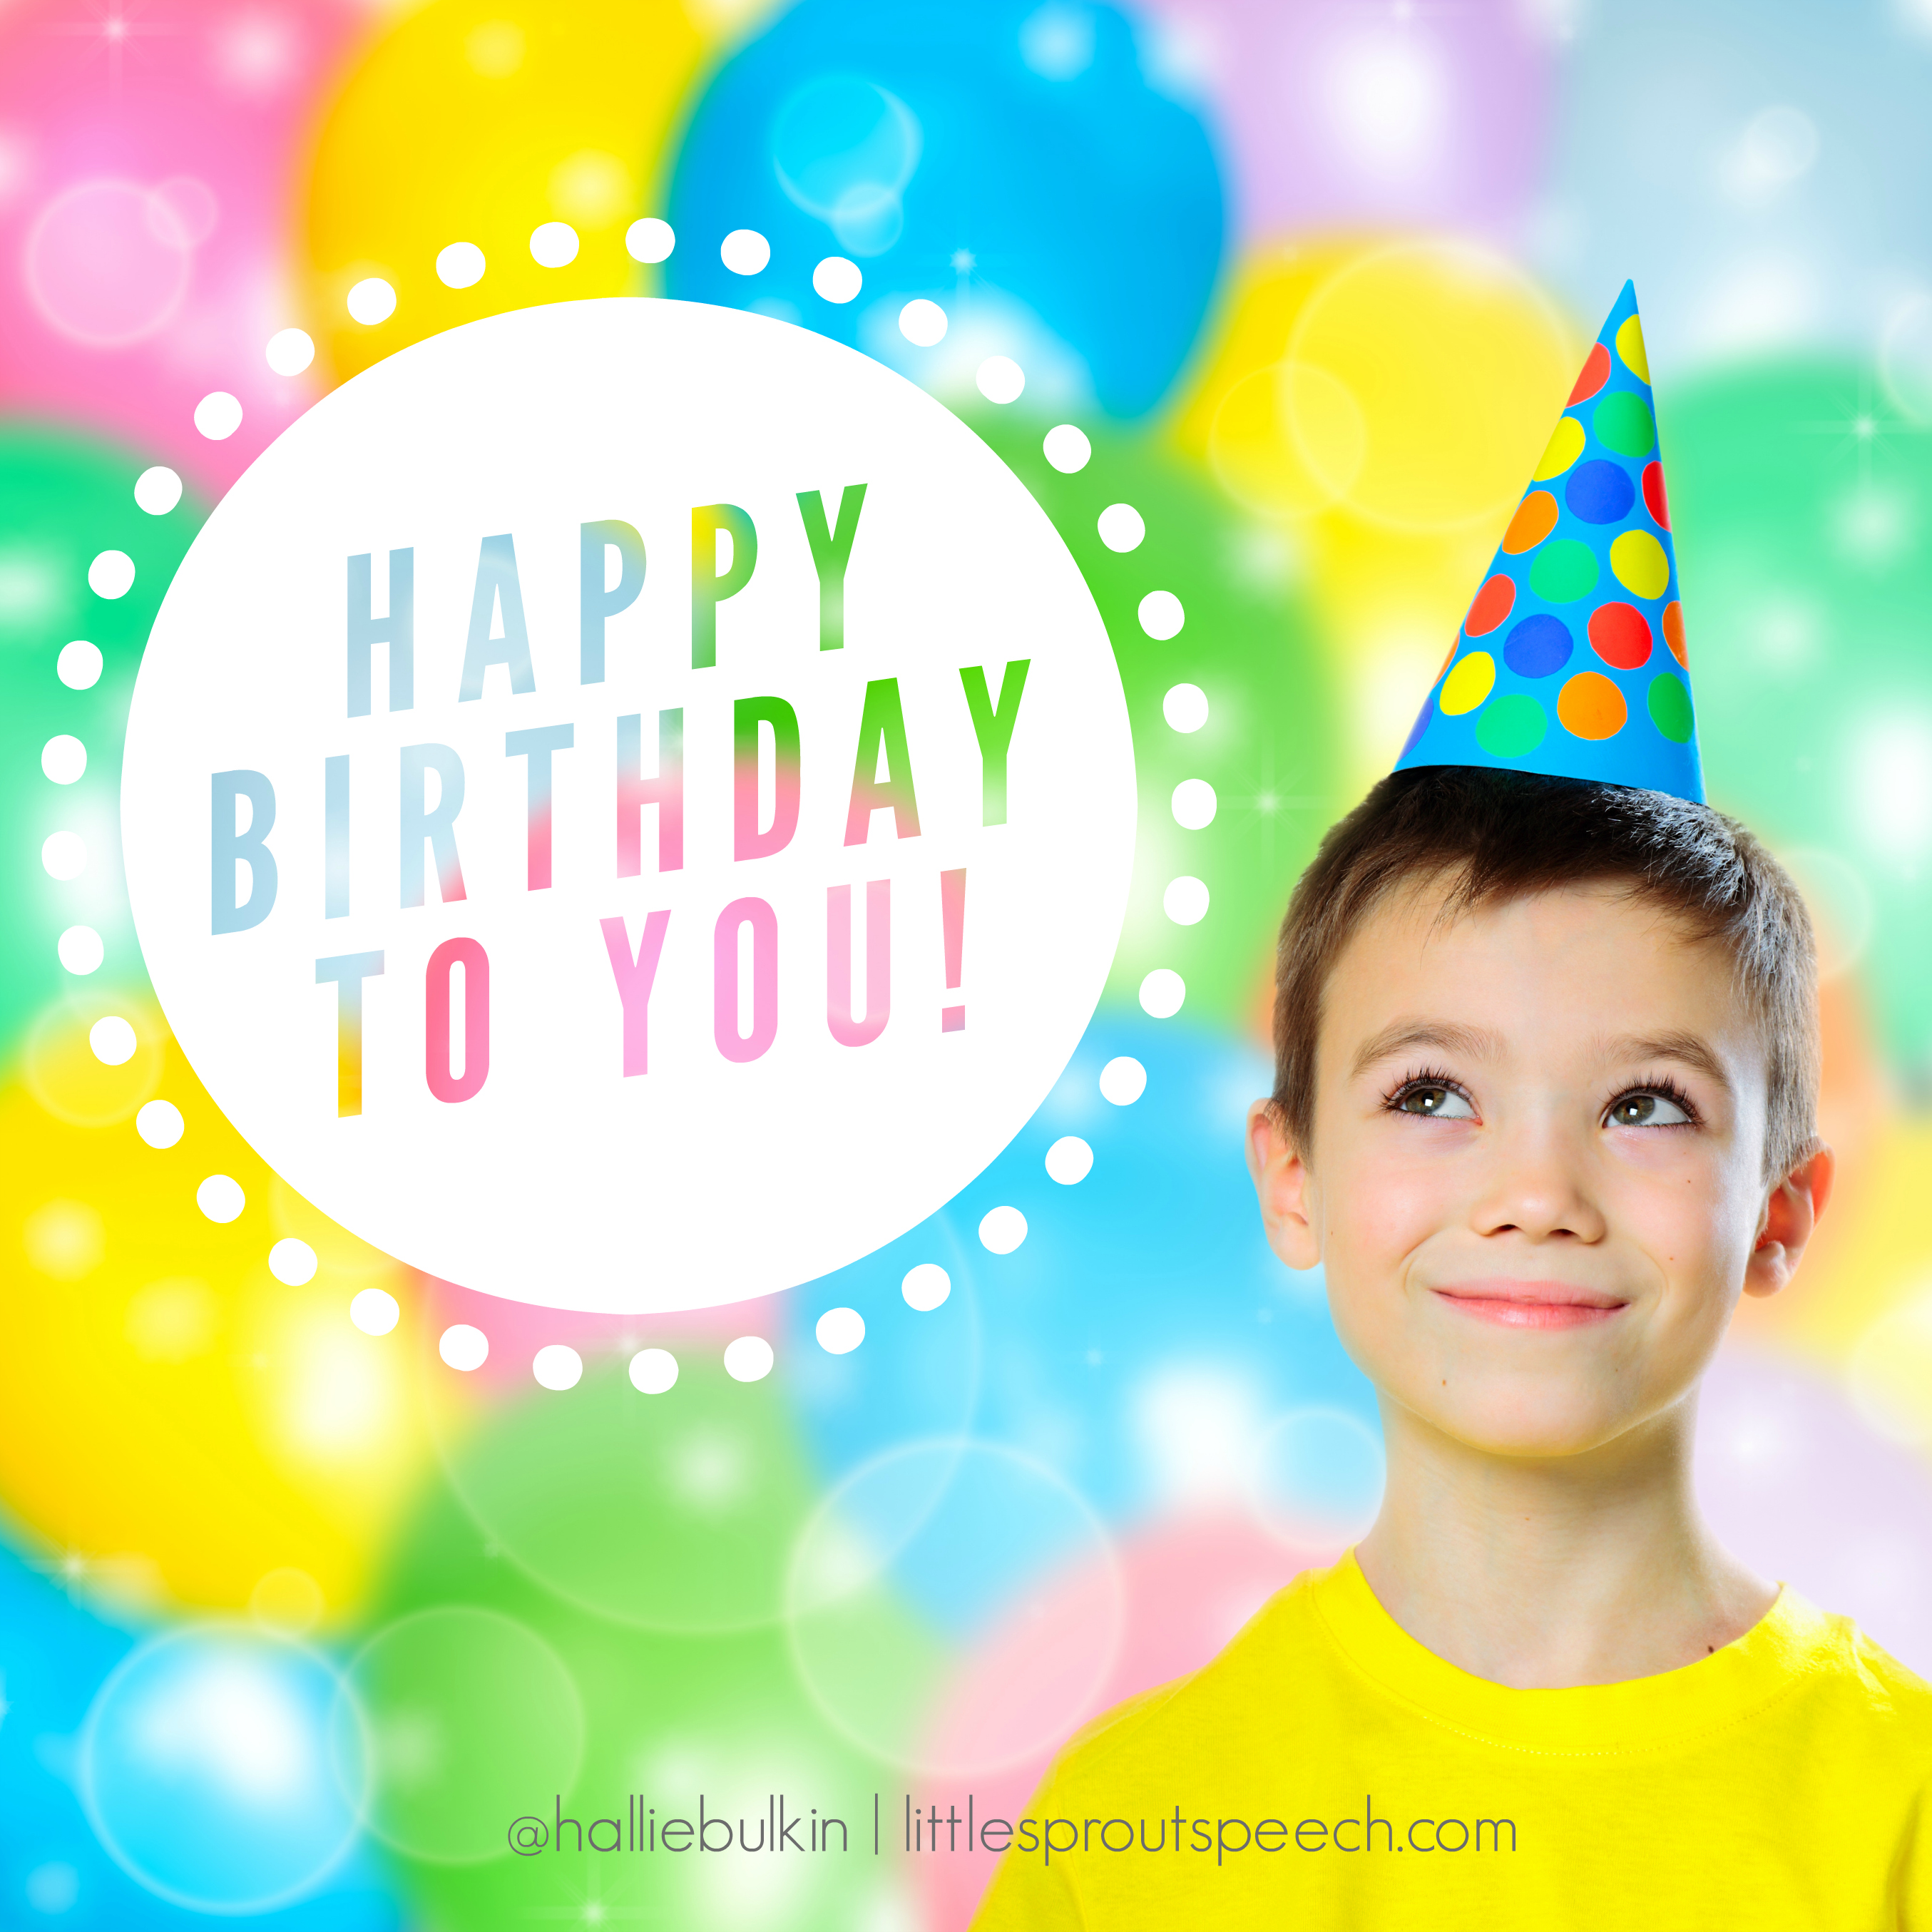 5 Tips For A Successful Birthday Party Your Child With Autism